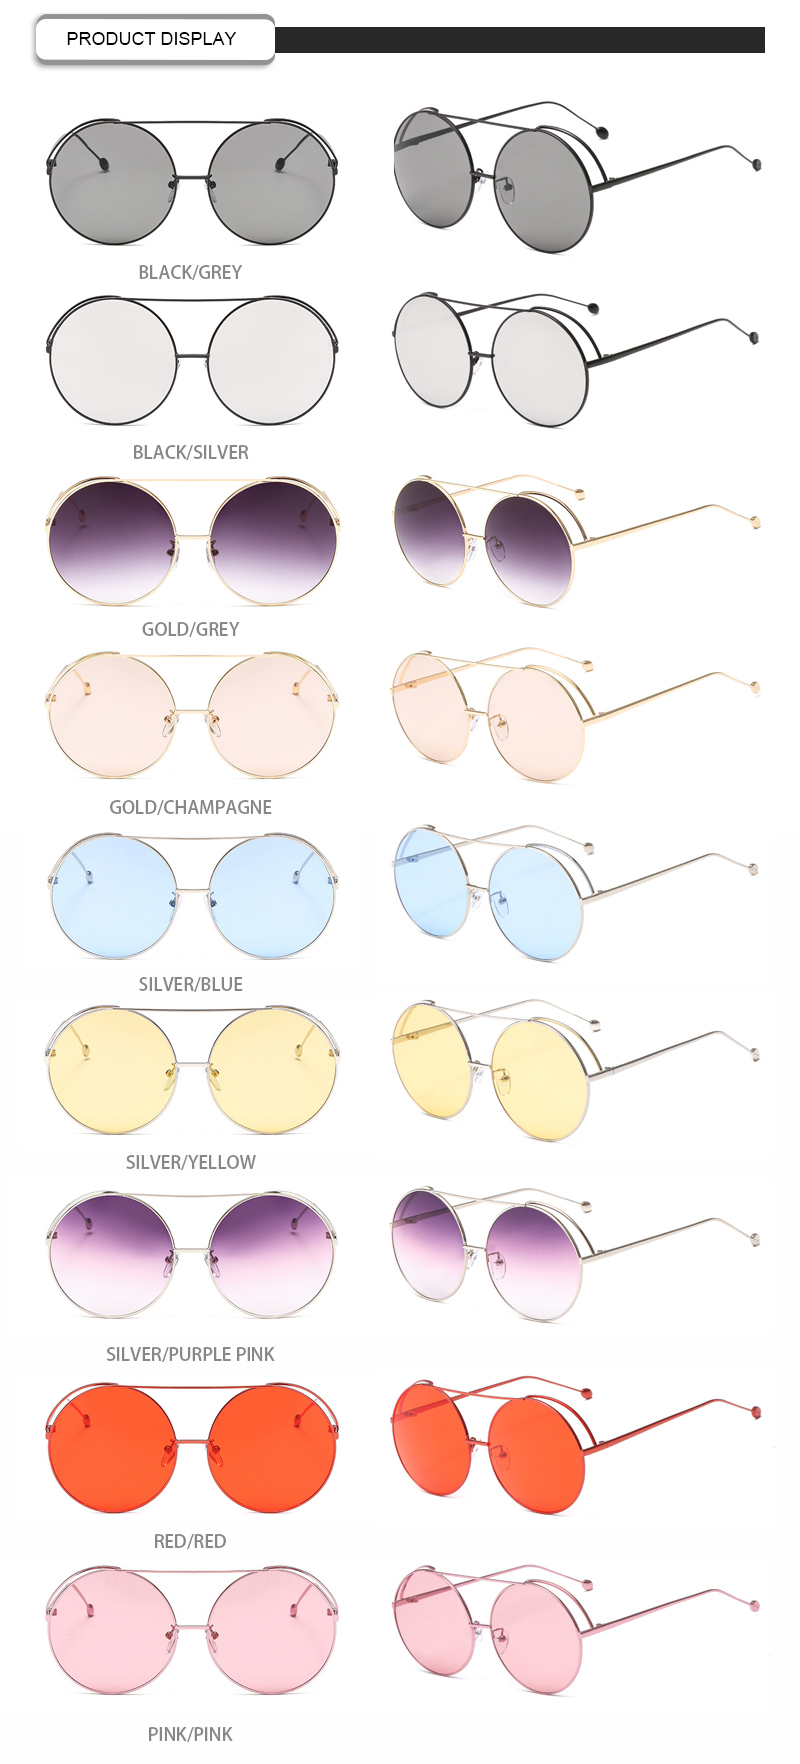 2019 Red Women Brand Designer High Quality Fashionable Metal Shades Round Sunglasses